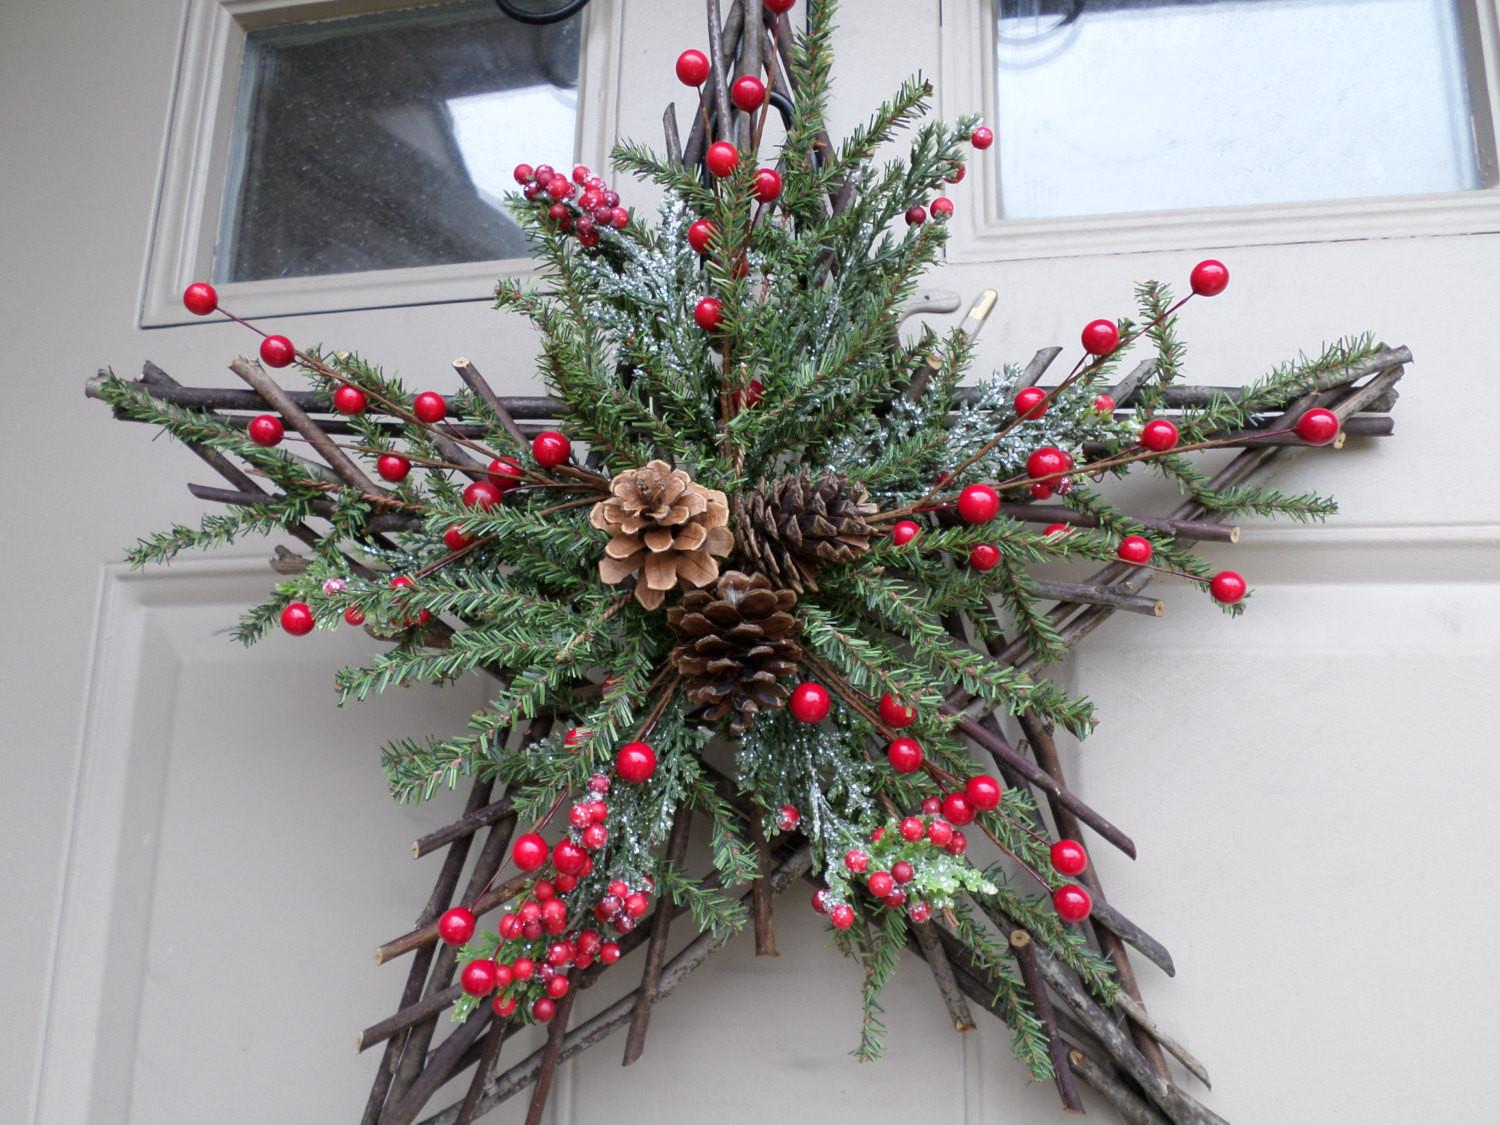 Christmas Twig Star Wreath Swag Decor Berries